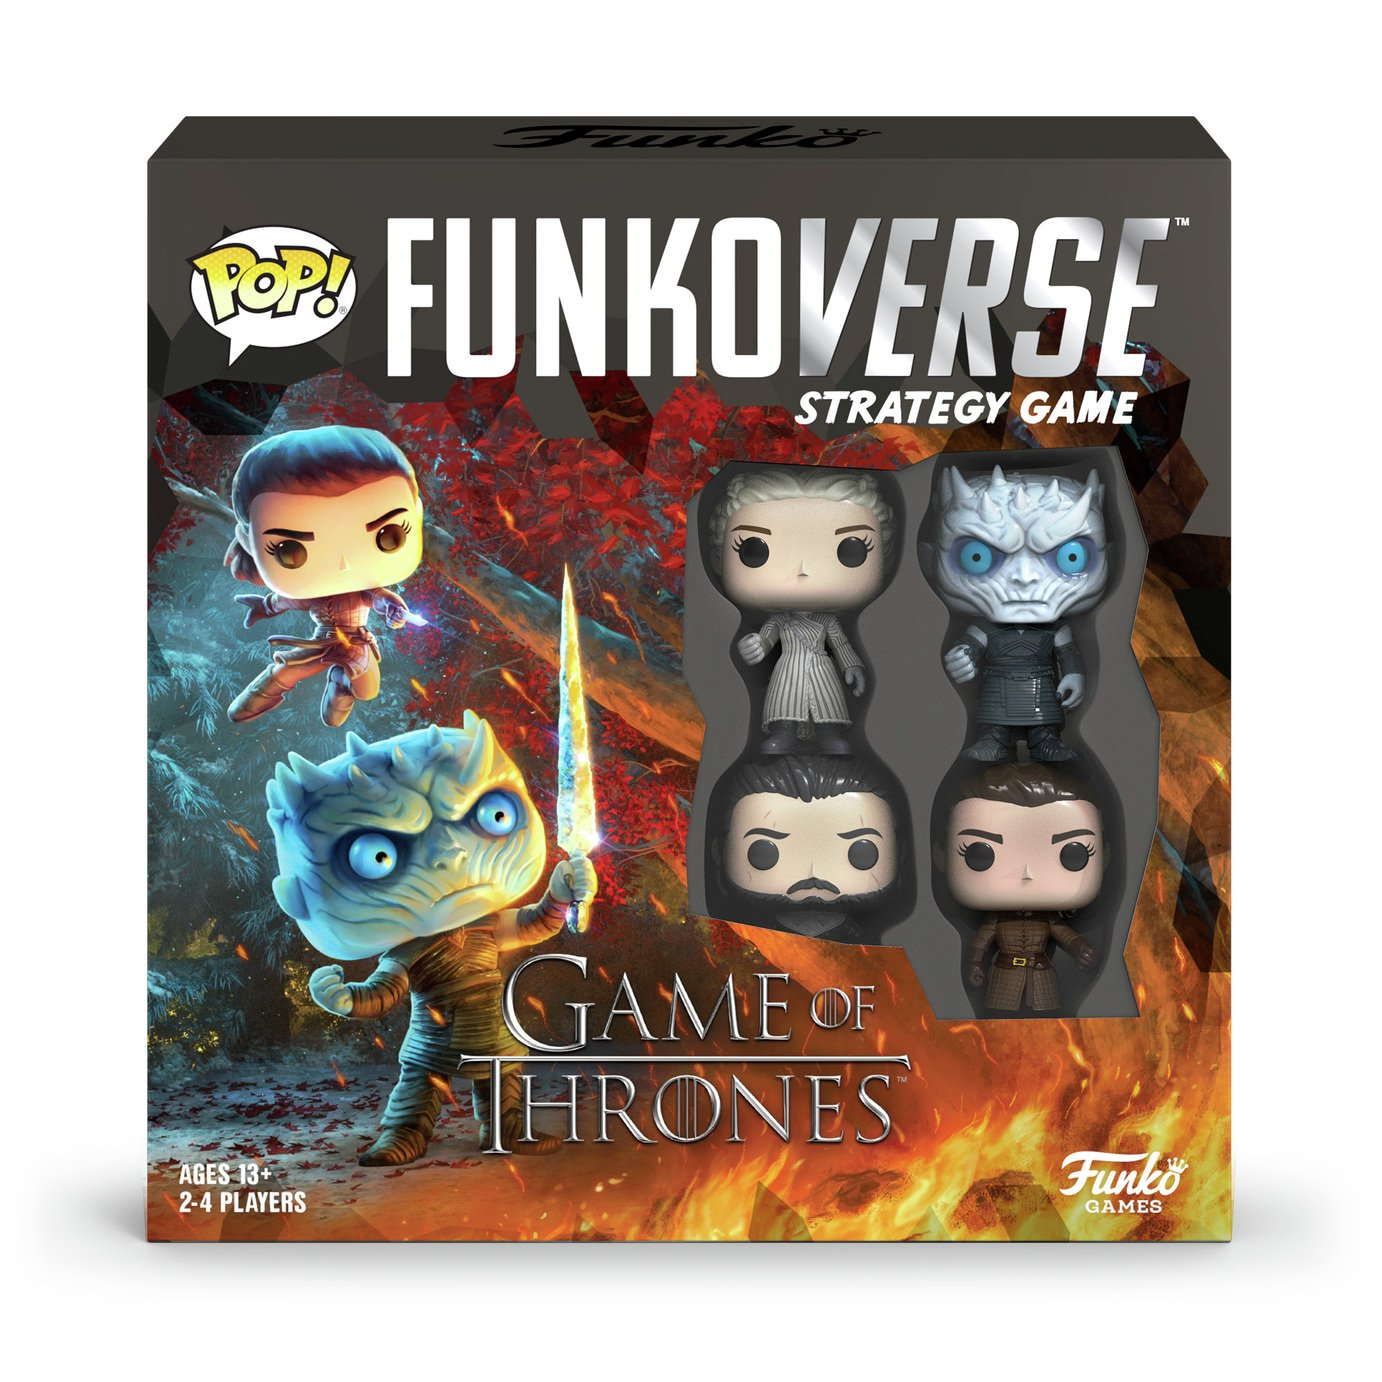 Funkoverse Game of Thrones Game